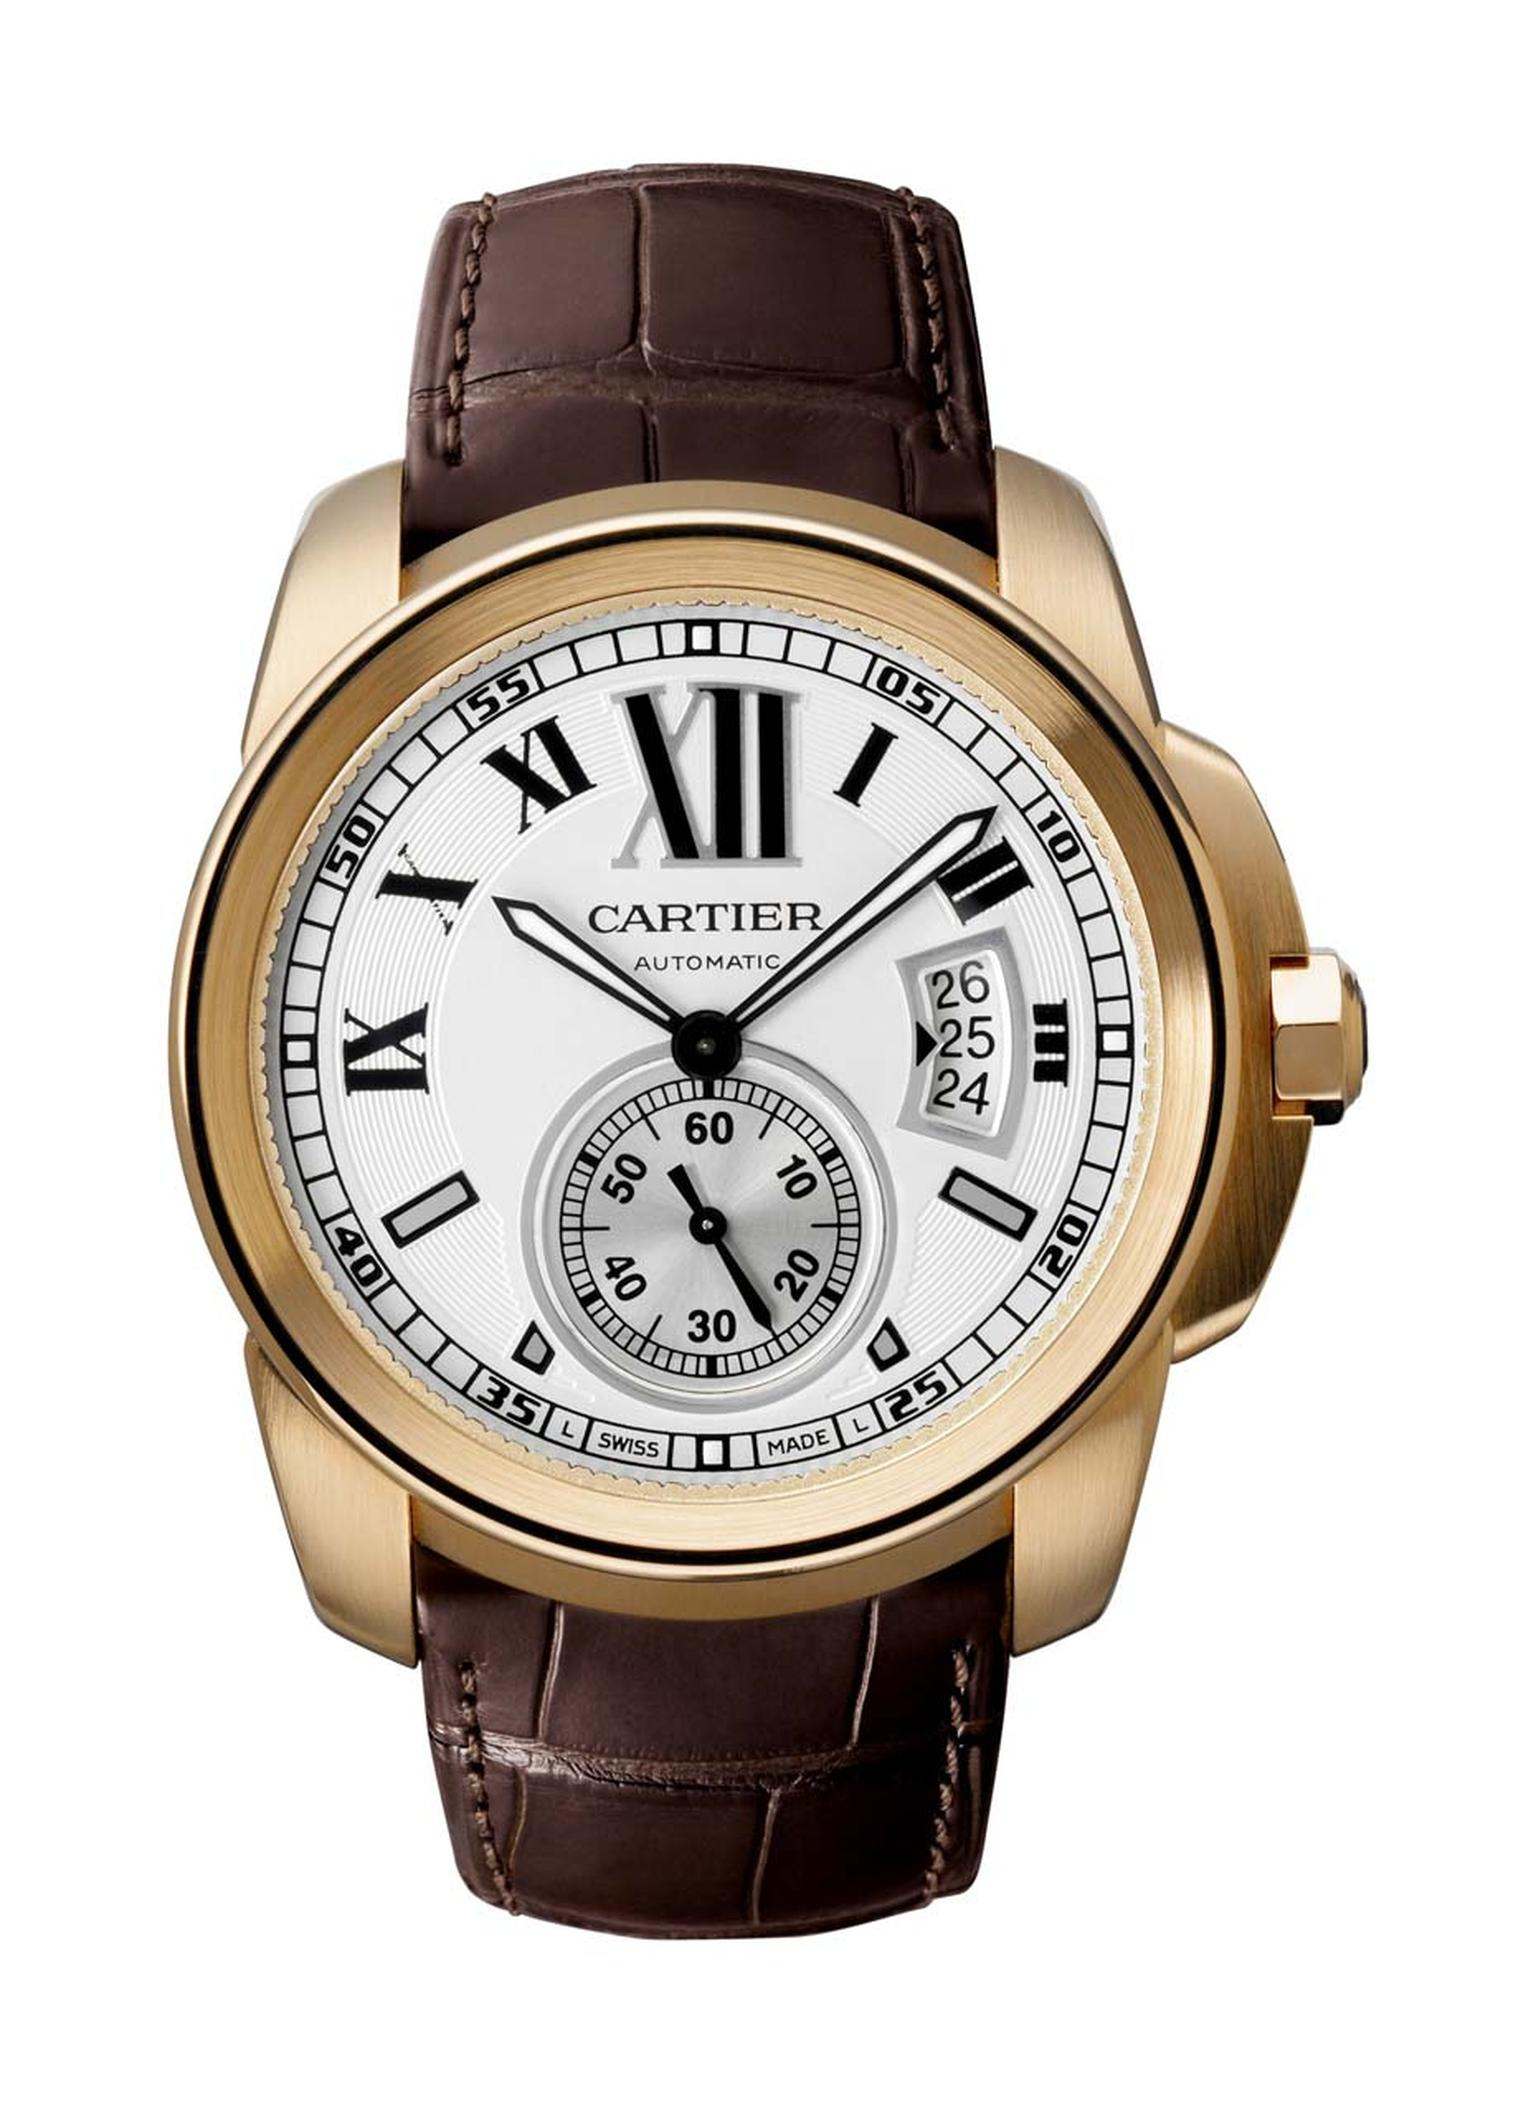 The new Calibre de Cartier features the first in-house made automatic movement, Caliber 1904 MC.